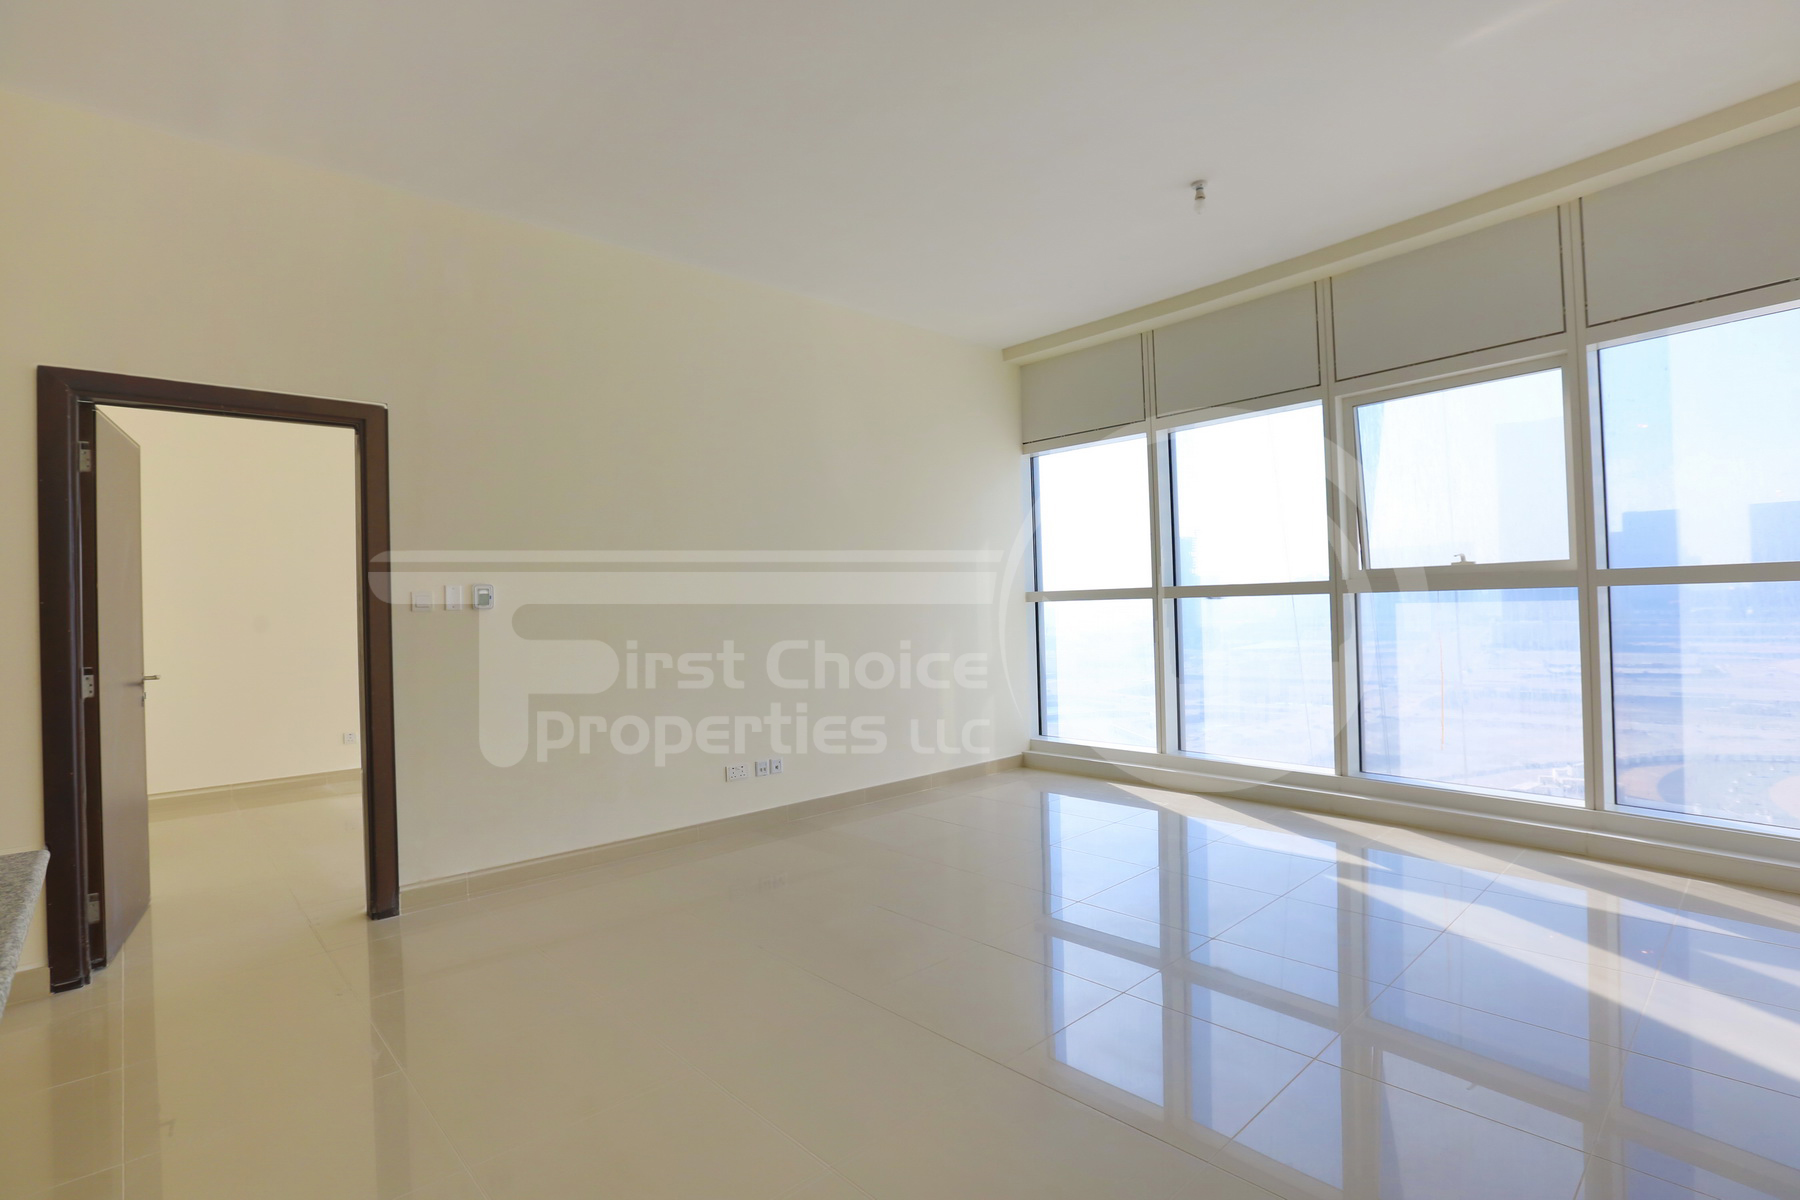 1BR Apartment - Abu Dhabi - UAE - Al Reem Island - City of Lights - C10 Building (14).JPG